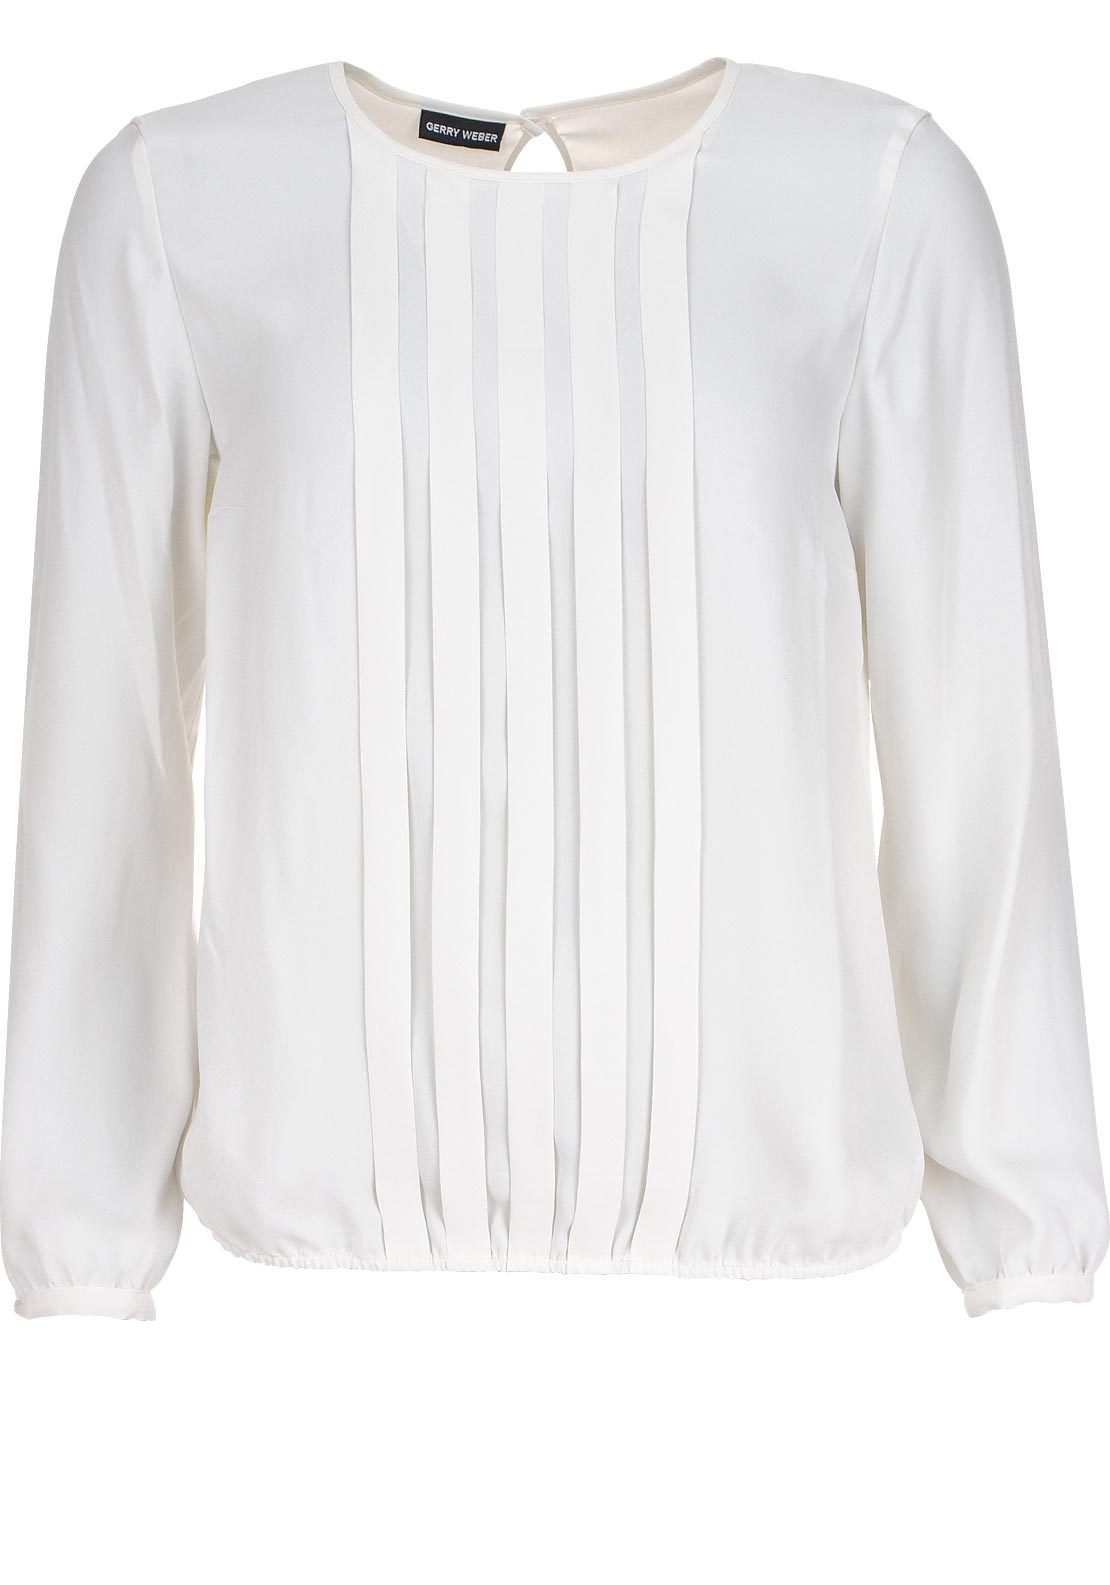 Gerry Weber Pleat Front Long Sleeve Blouse, Ivory